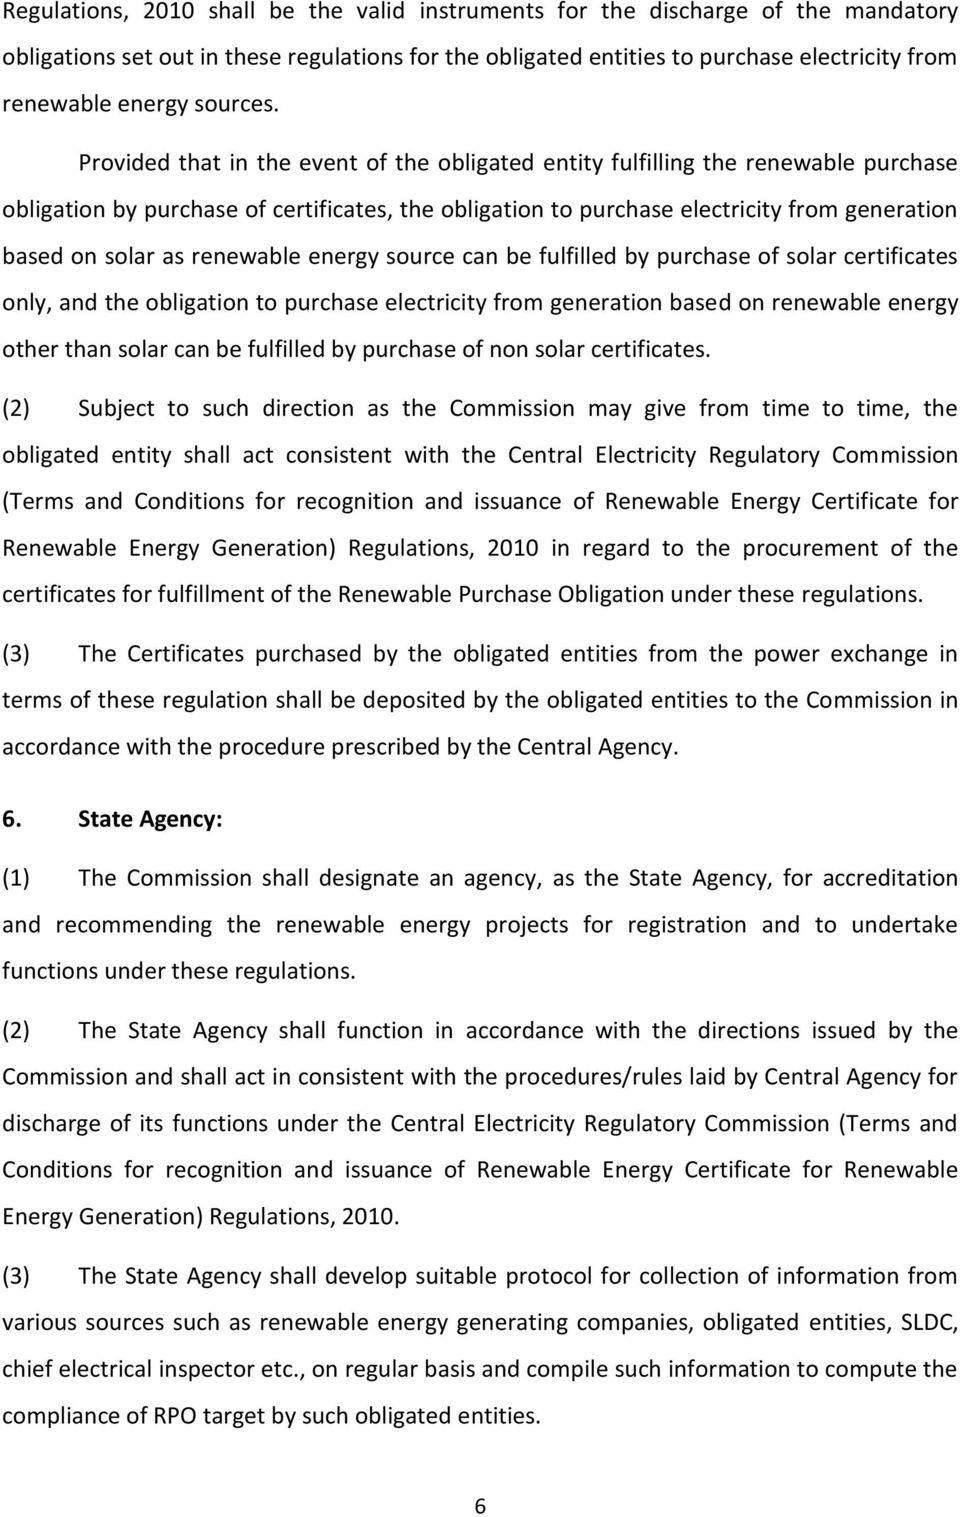 Provided that in the event of the obligated entity fulfilling the renewable purchase obligation by purchase of certificates, the obligation to purchase electricity from generation based on solar as